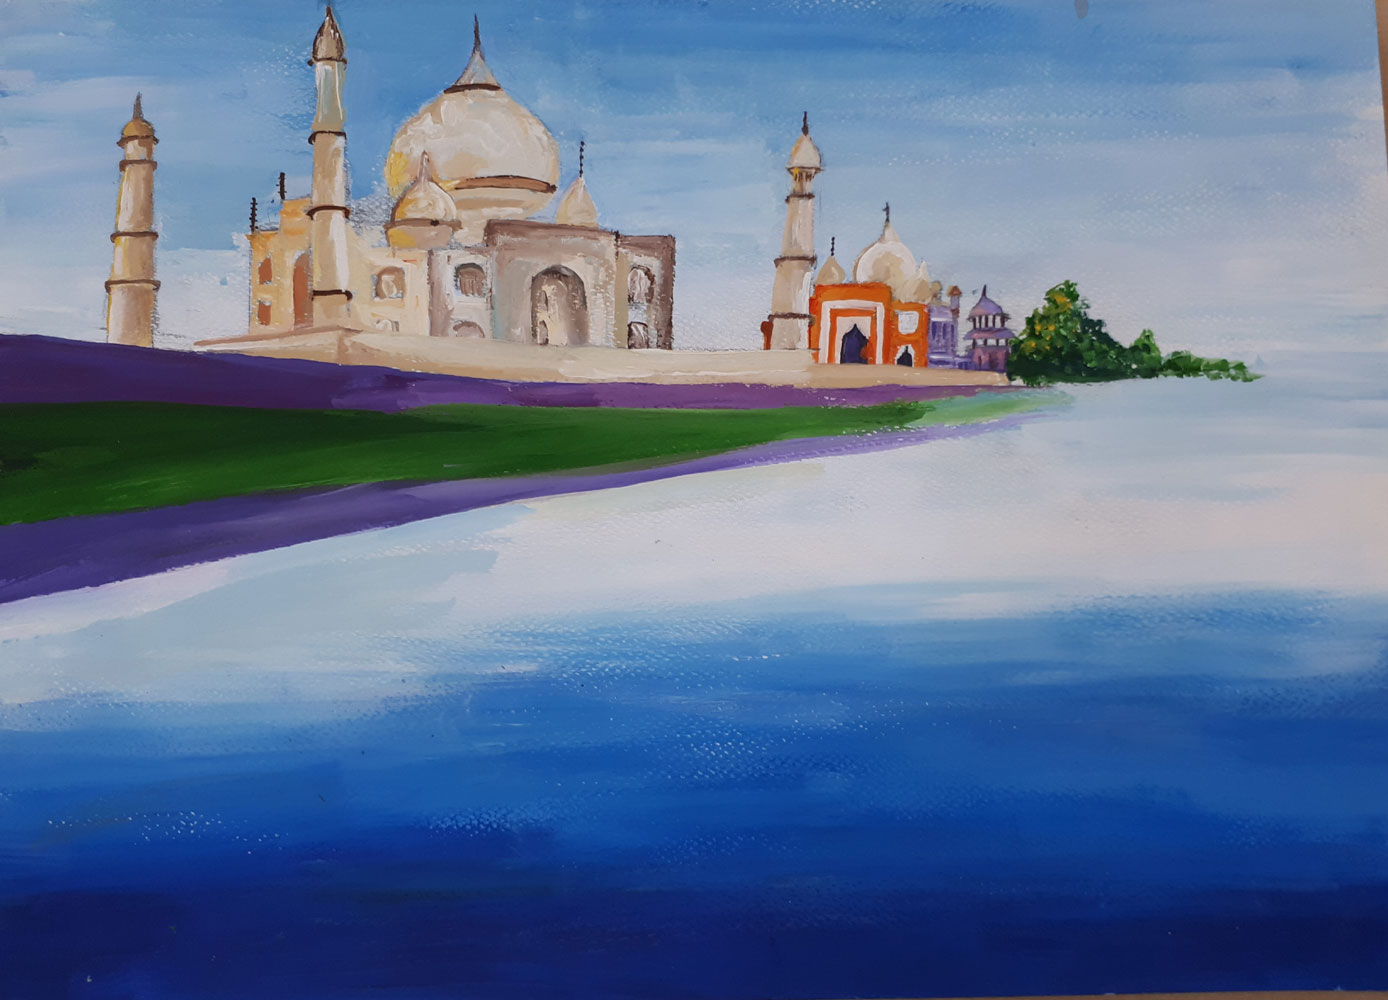 Taj Mahal, Art of the Week